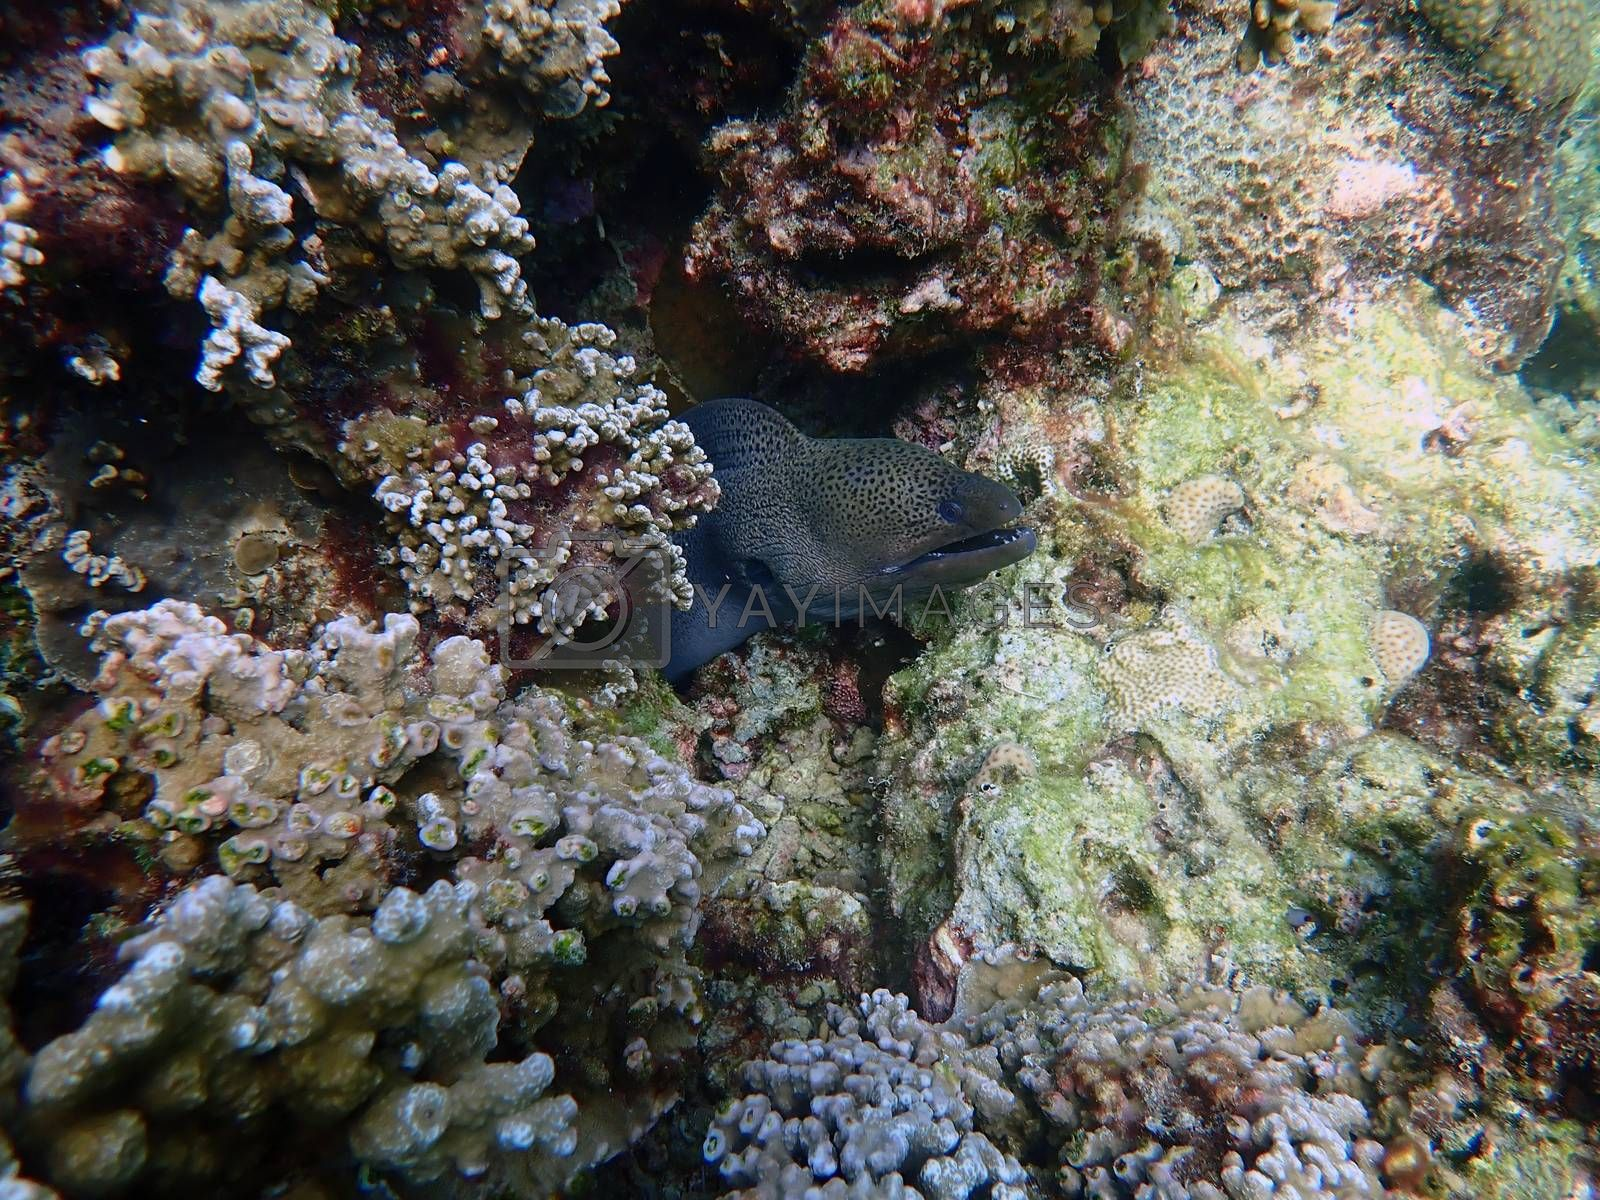 Moray eel with corals in sea, underwater landscape with sea life